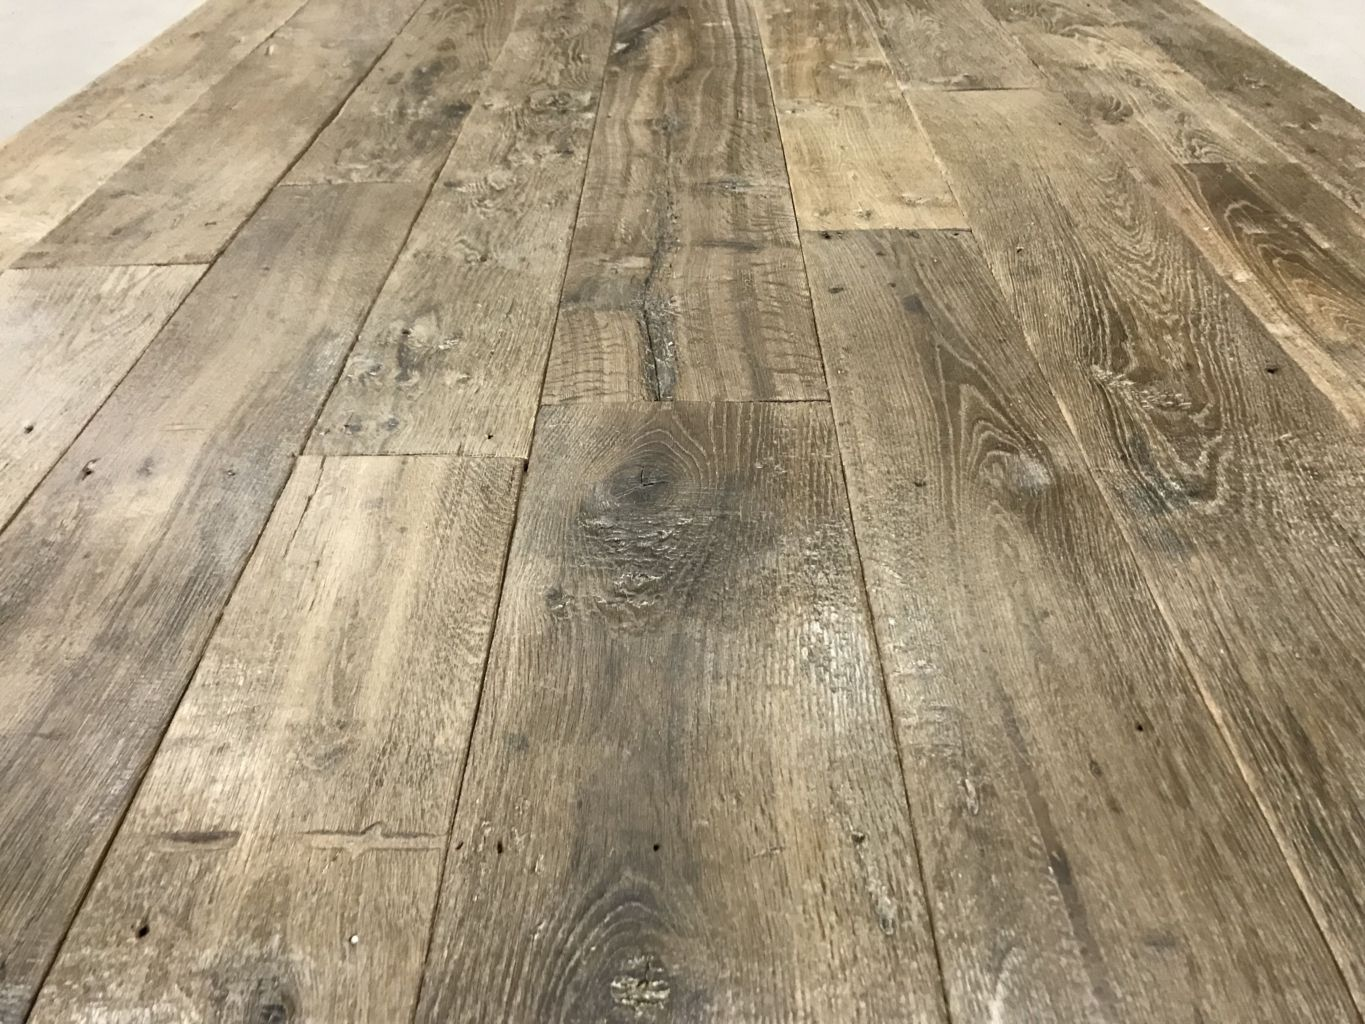 Antique reclaimed French oak floorboards – Pre-prepared for installing